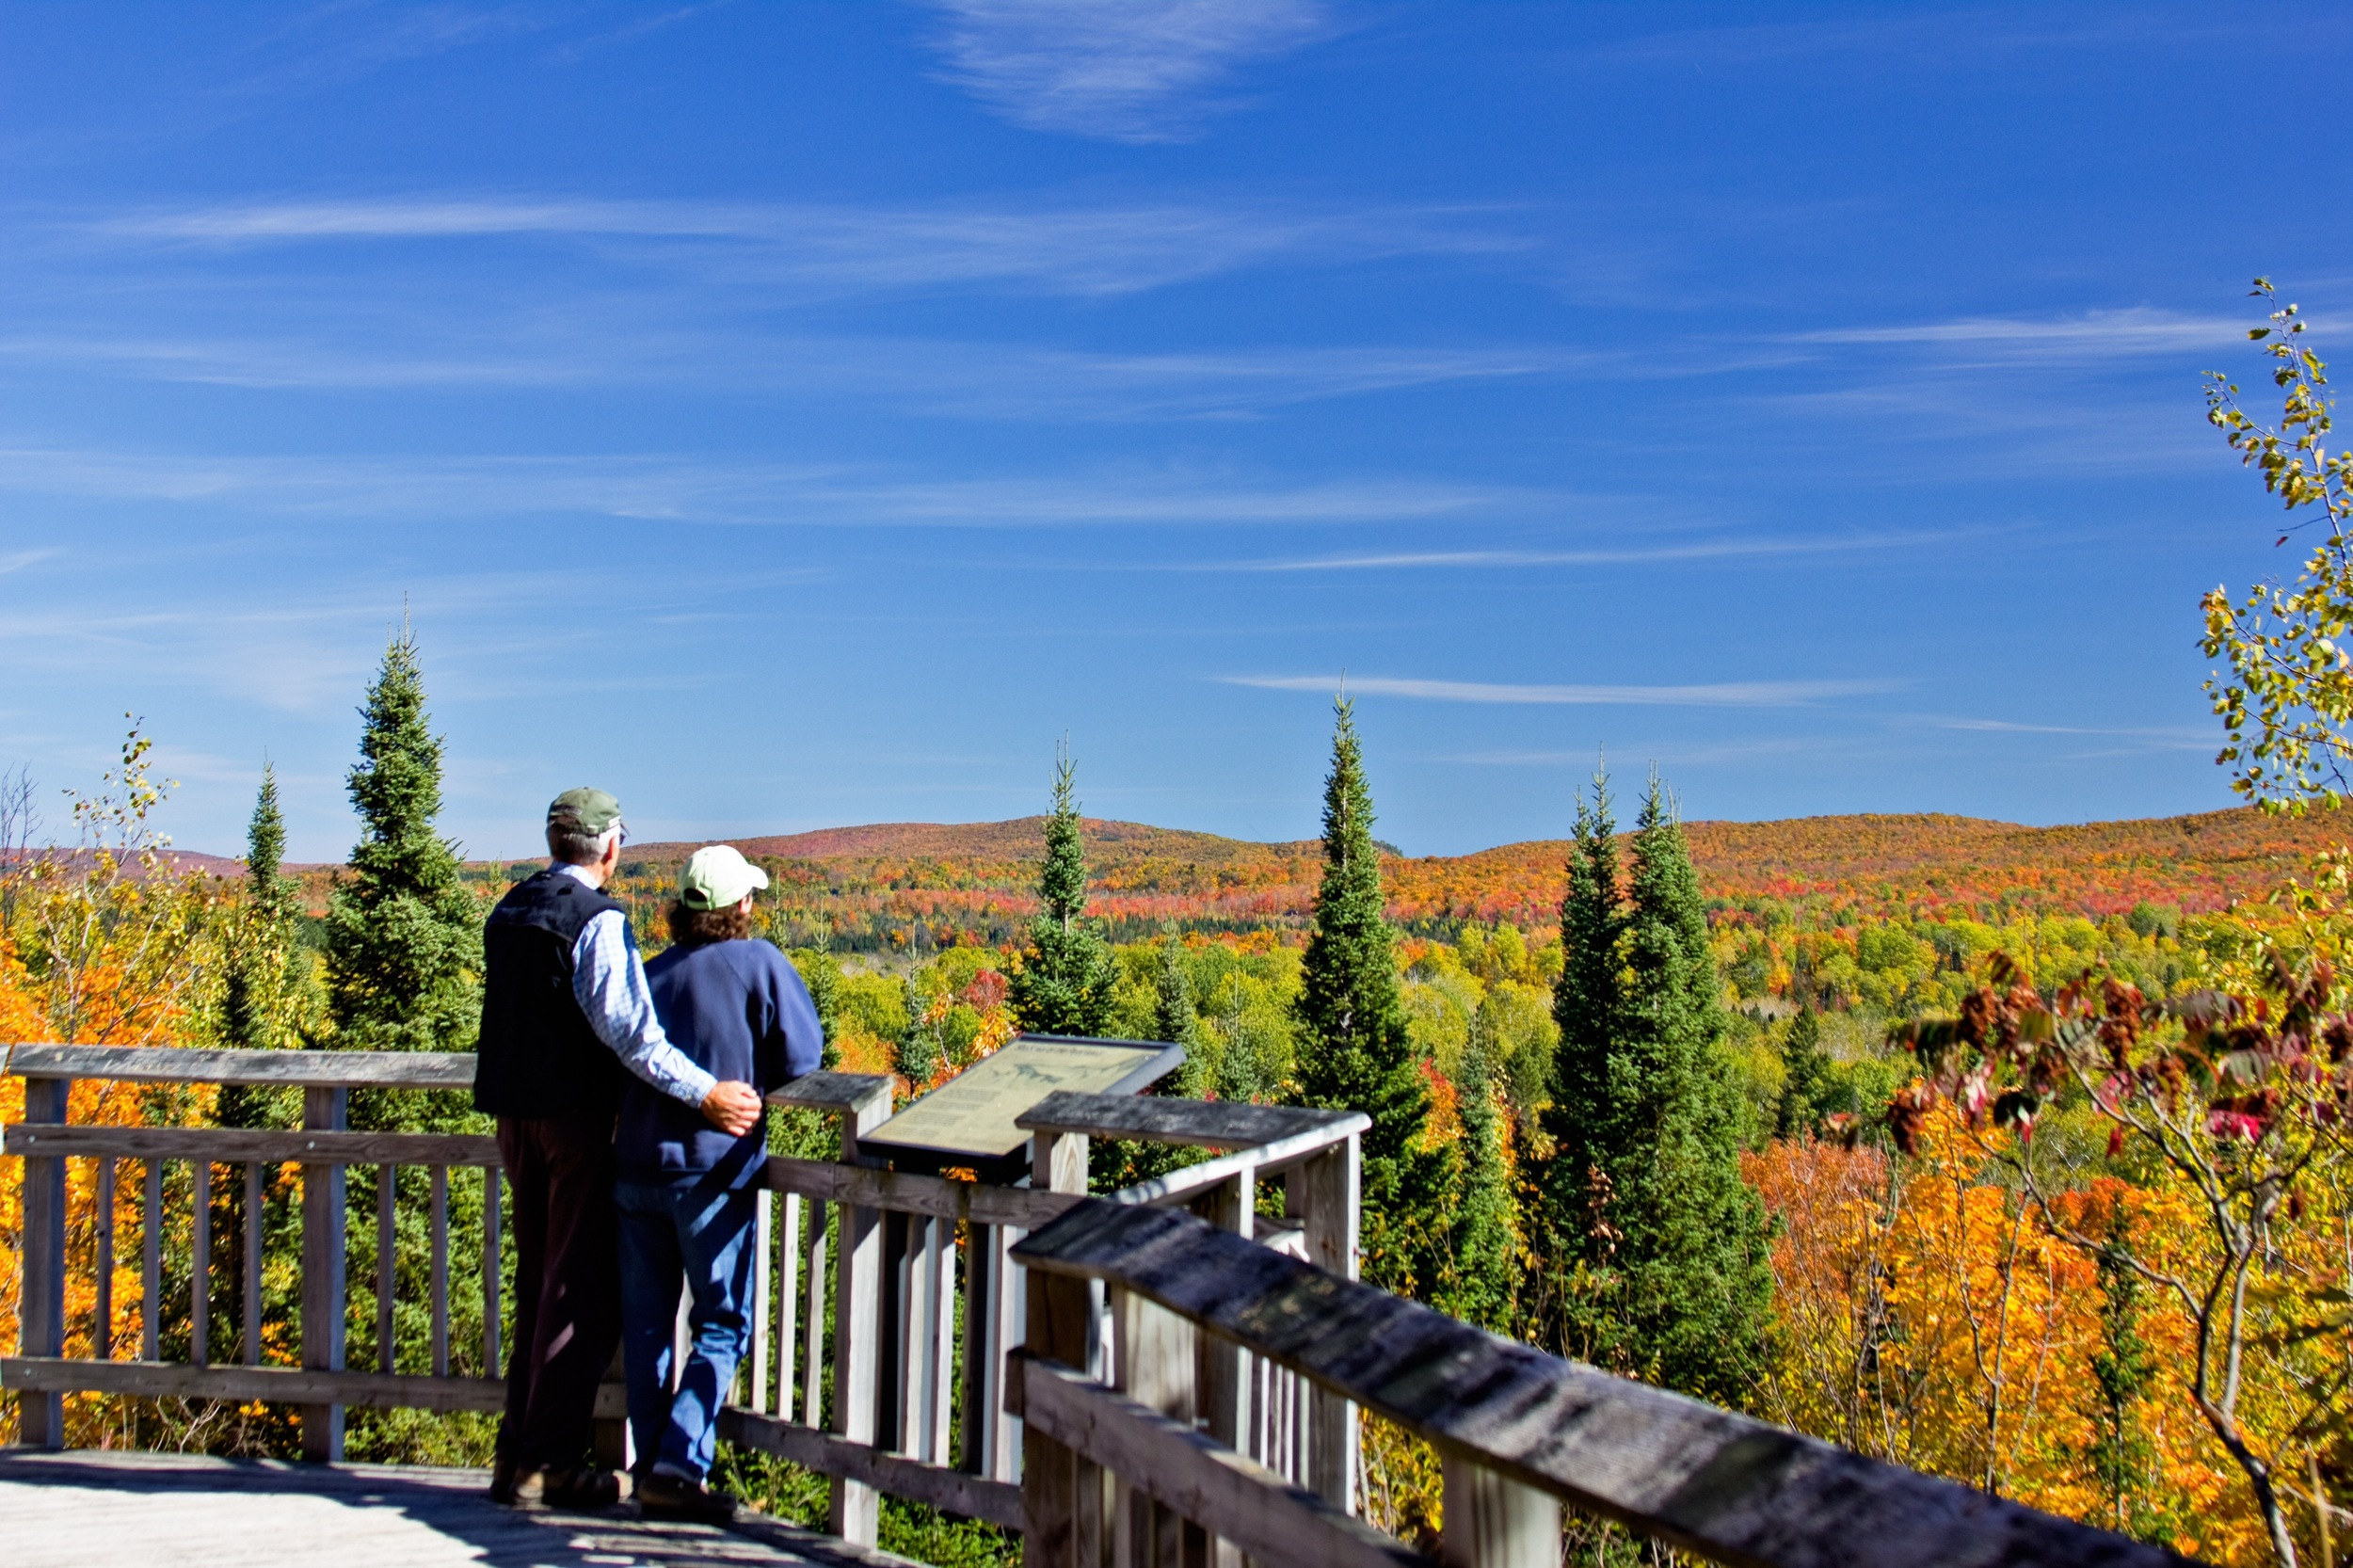 Penokee overlook at peak fall color.  (Click to enlarge)